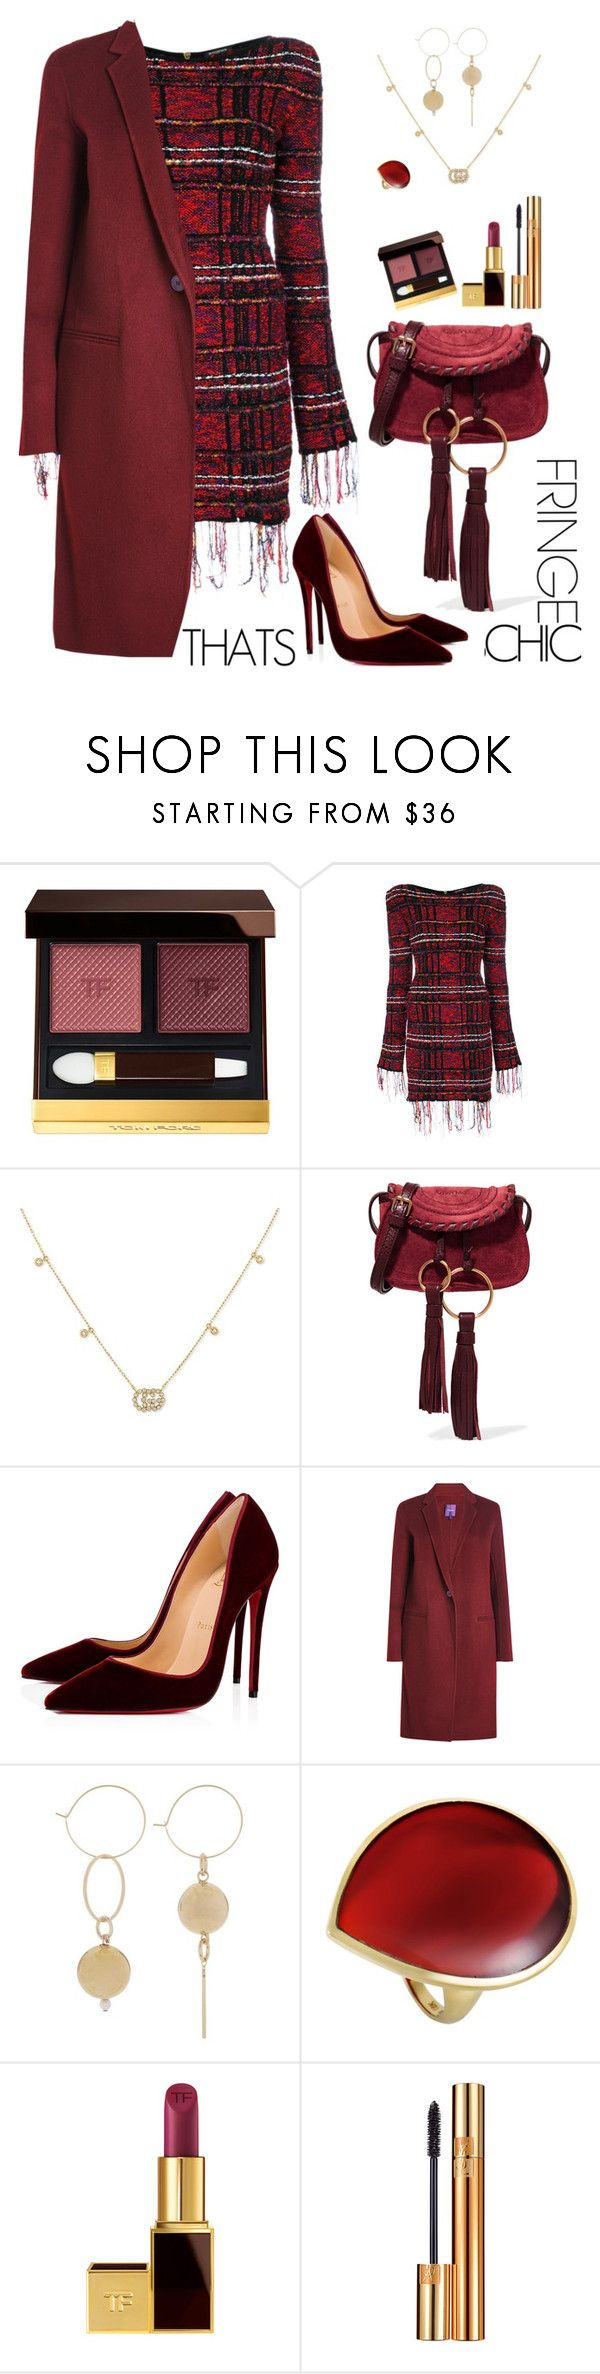 """Fringe Thats Chic"" by ellie366 ❤ liked on Polyvore featuring Tom Ford, Balmain, Gucci, See by Chloé, Christian Louboutin, Theory, Ippolita, Yves Saint Laurent, fringe and velvet"